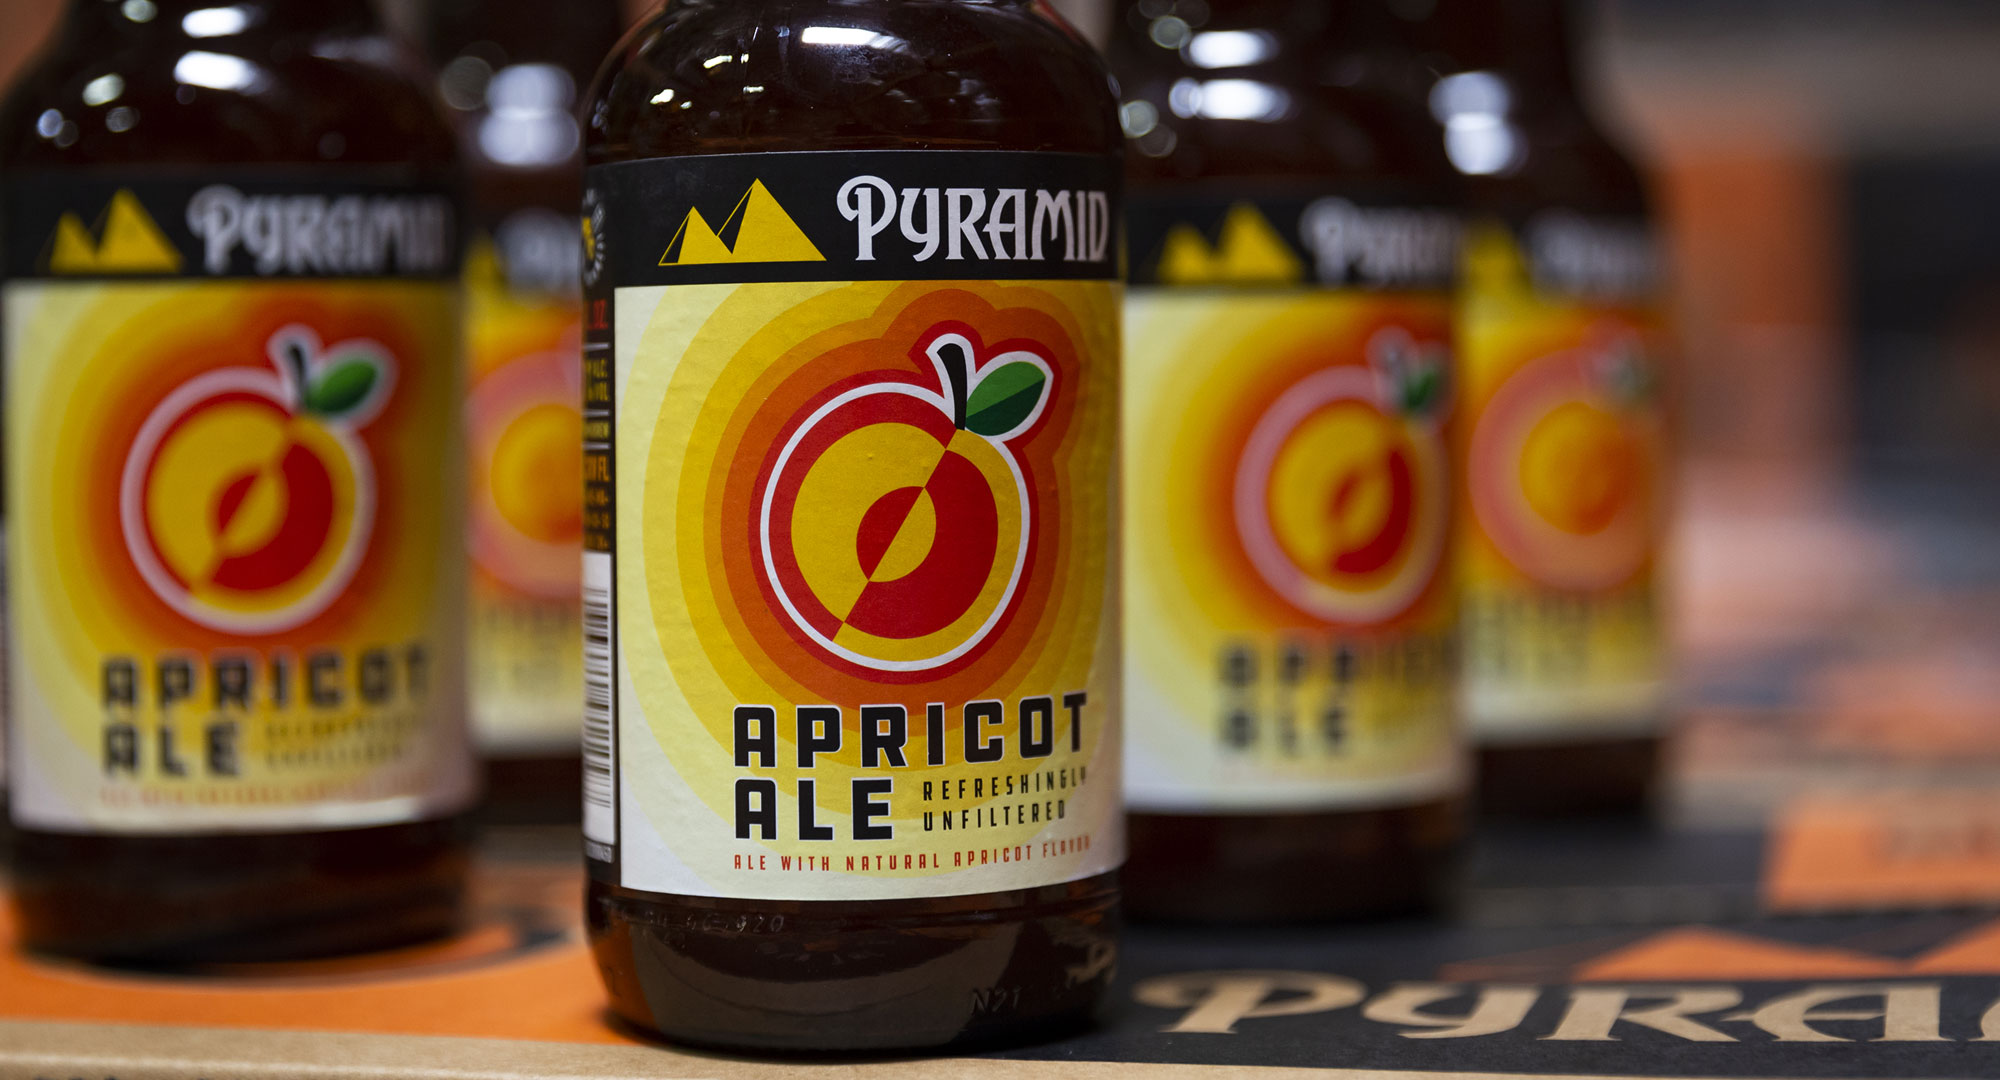 Closeup of an Apricot Ale bottle with more bottles blurred in the background